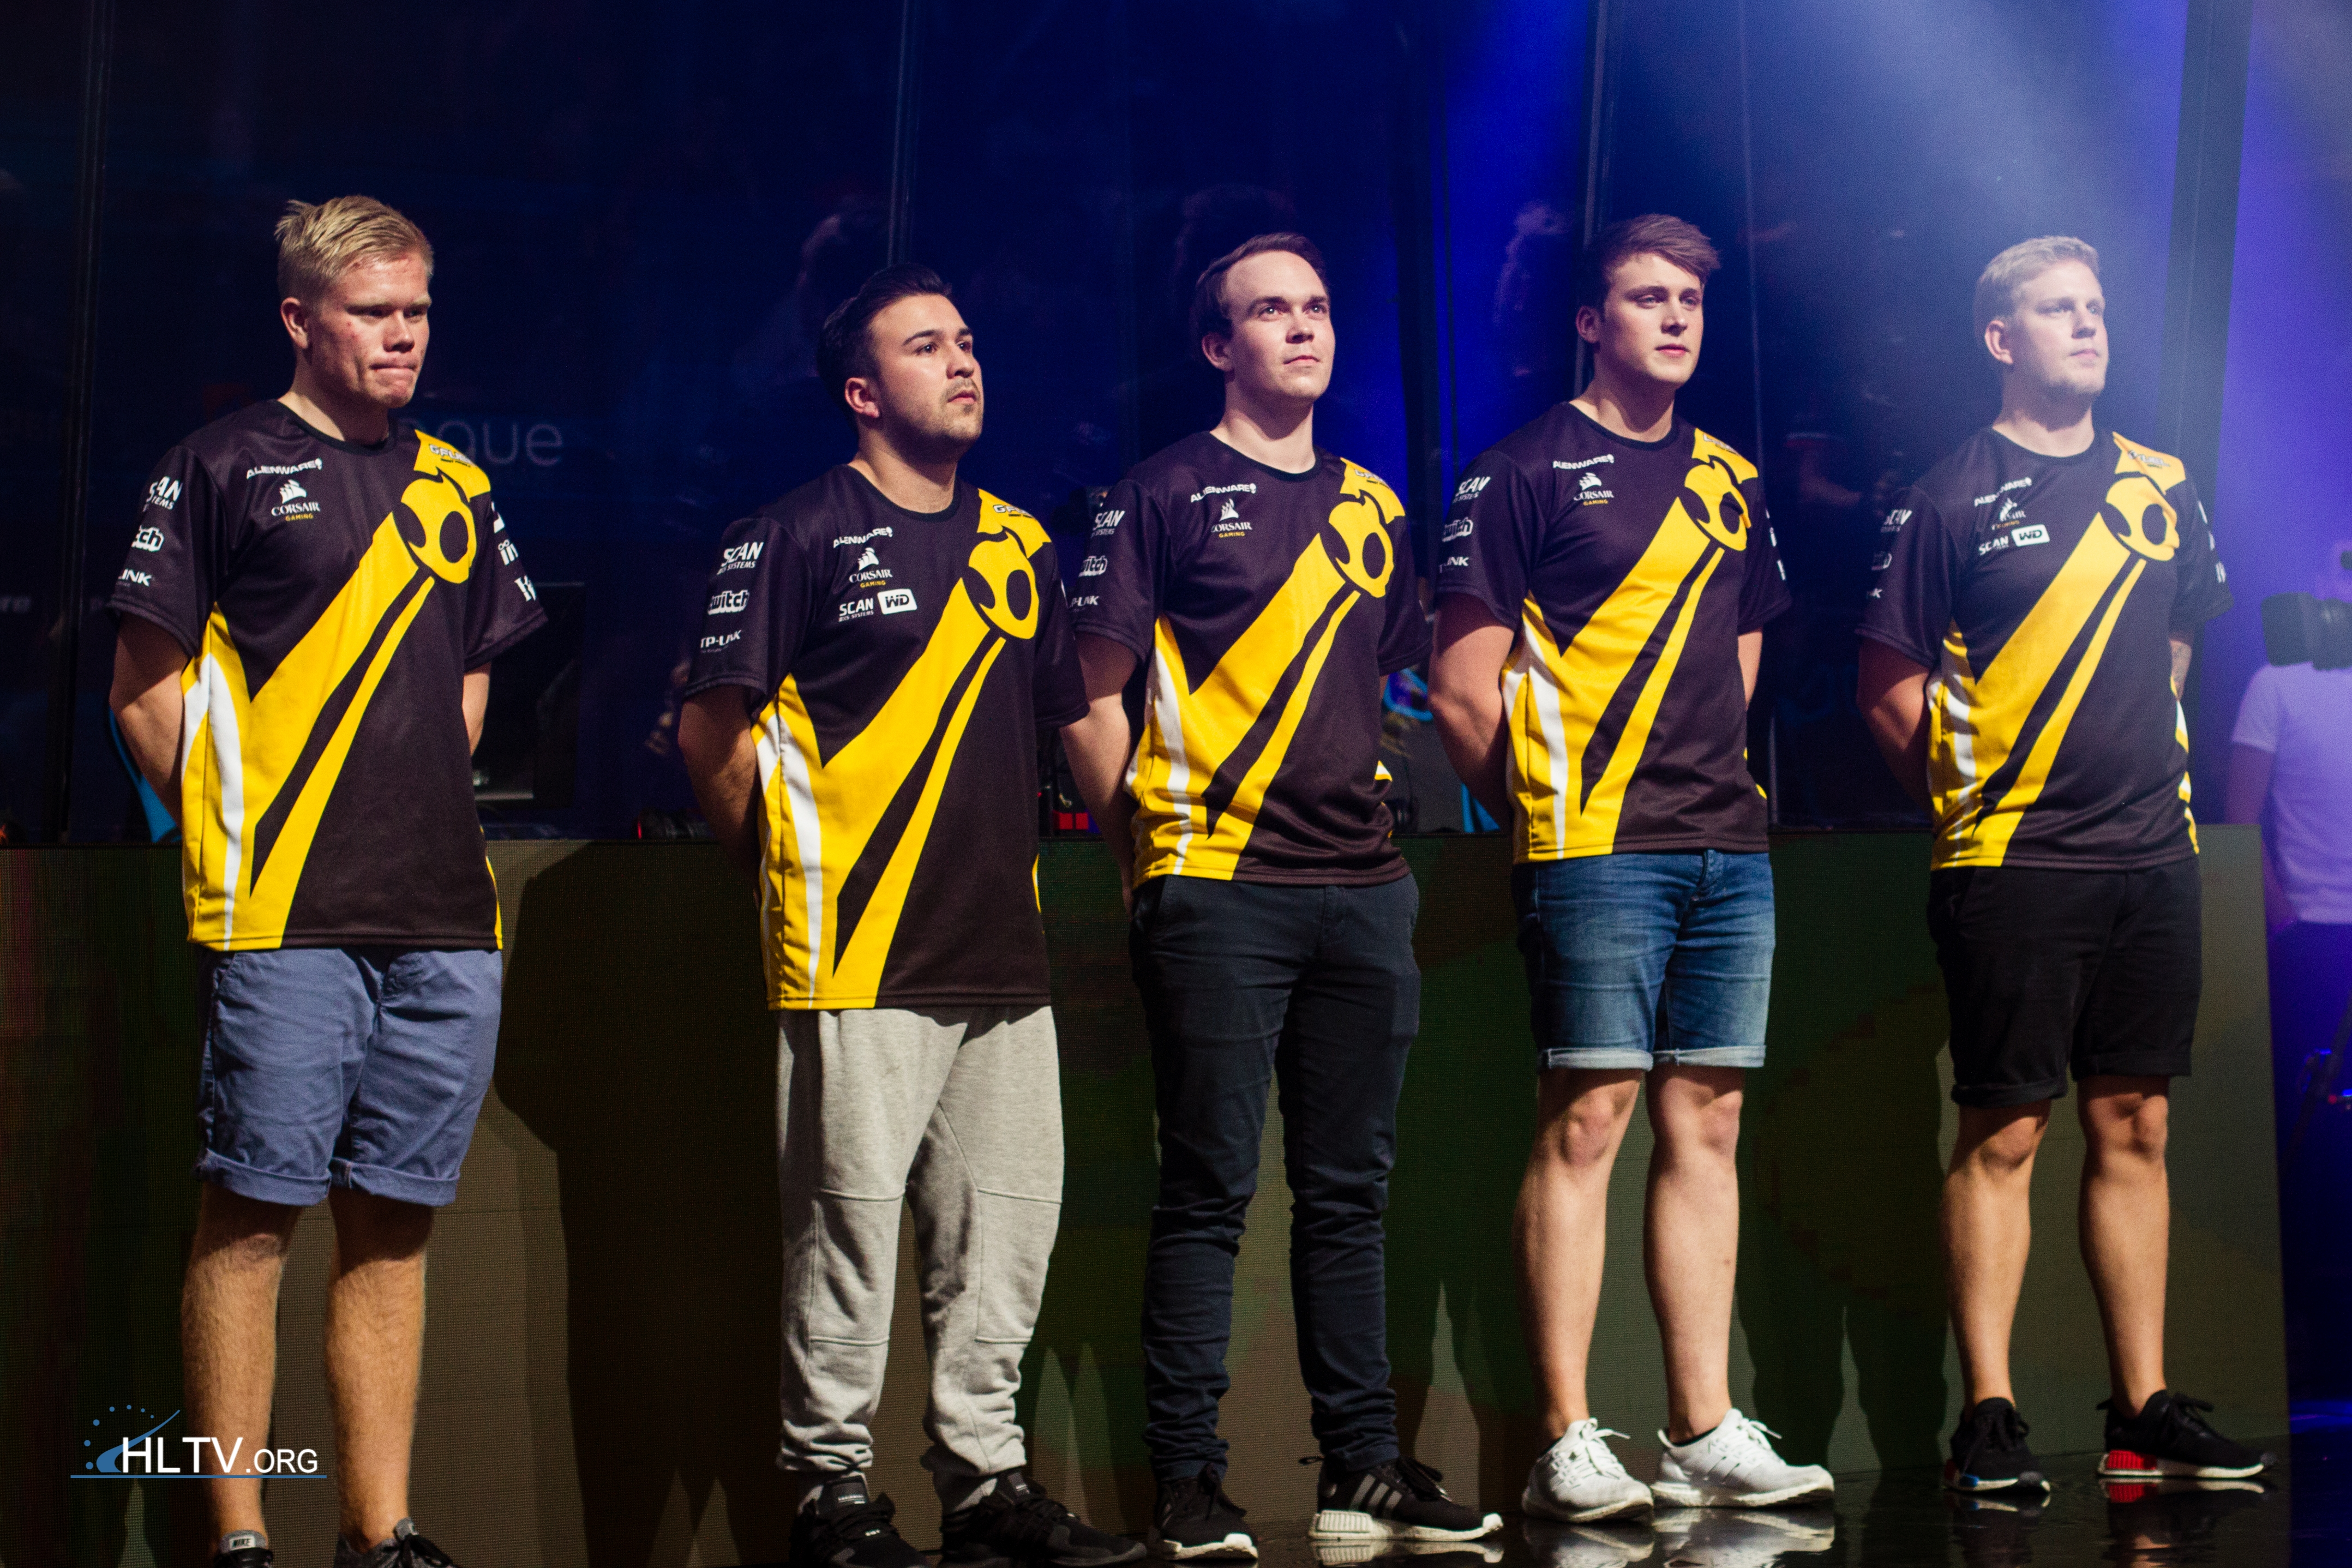 ex-Team Dignitas (Photo by HLTV.org)